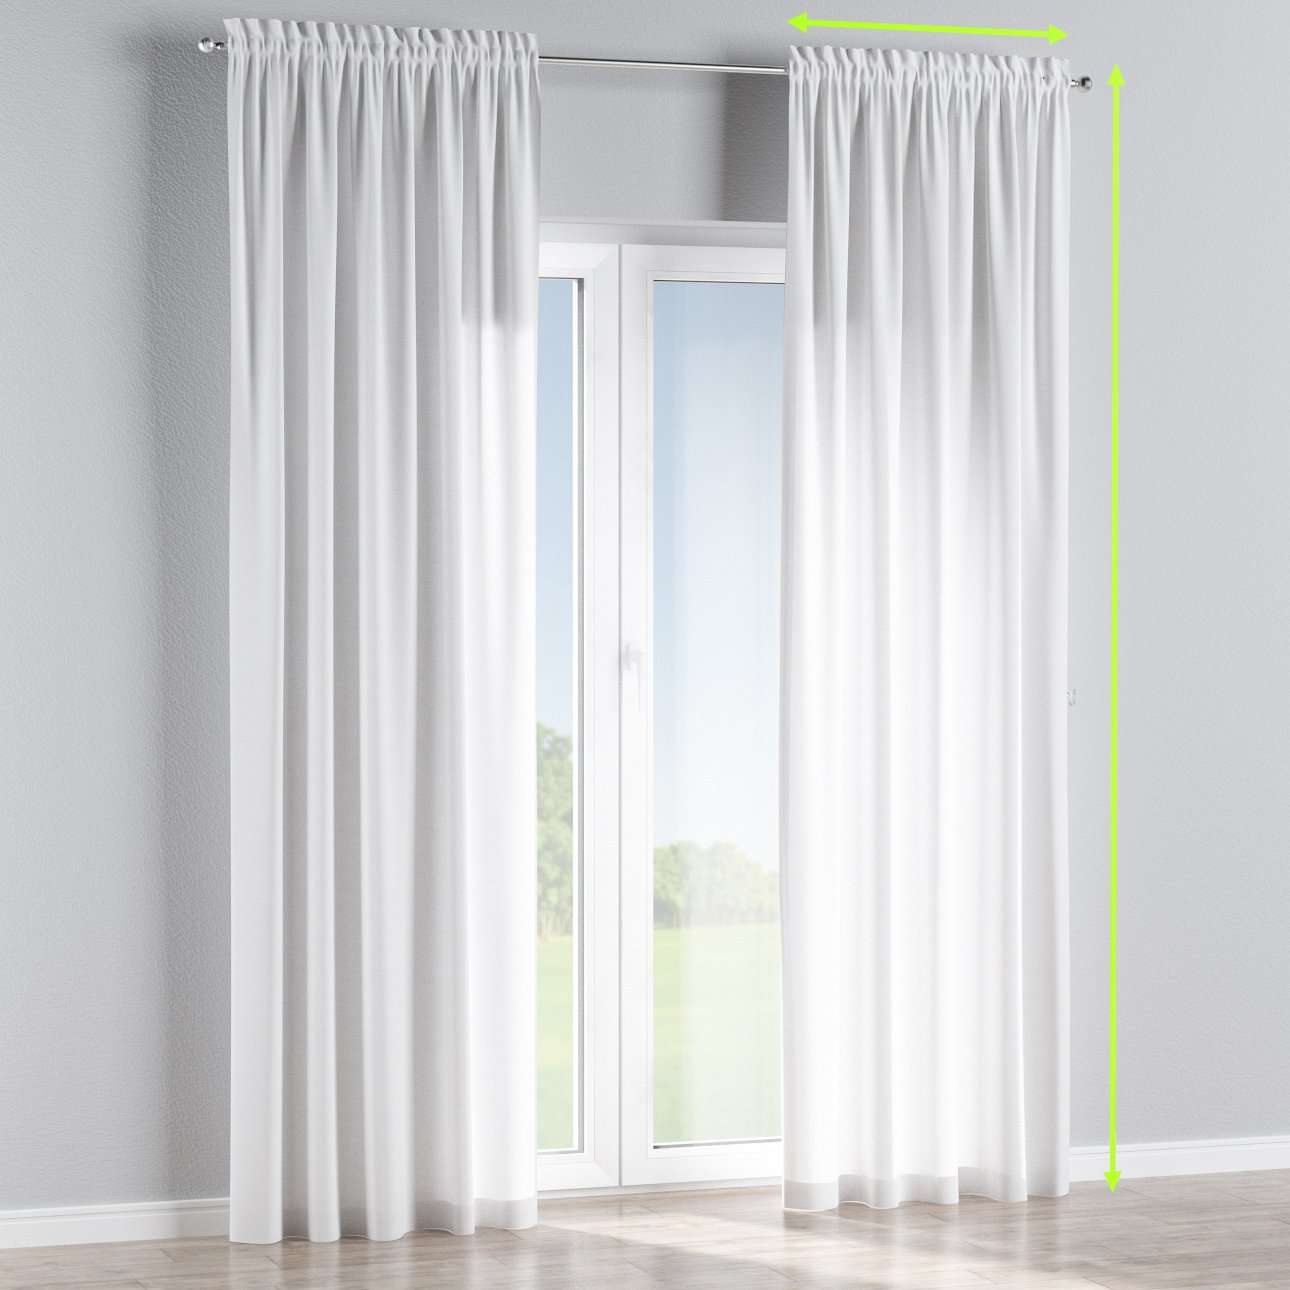 Slot and frill lined curtains in collection Jupiter, fabric: 127-01